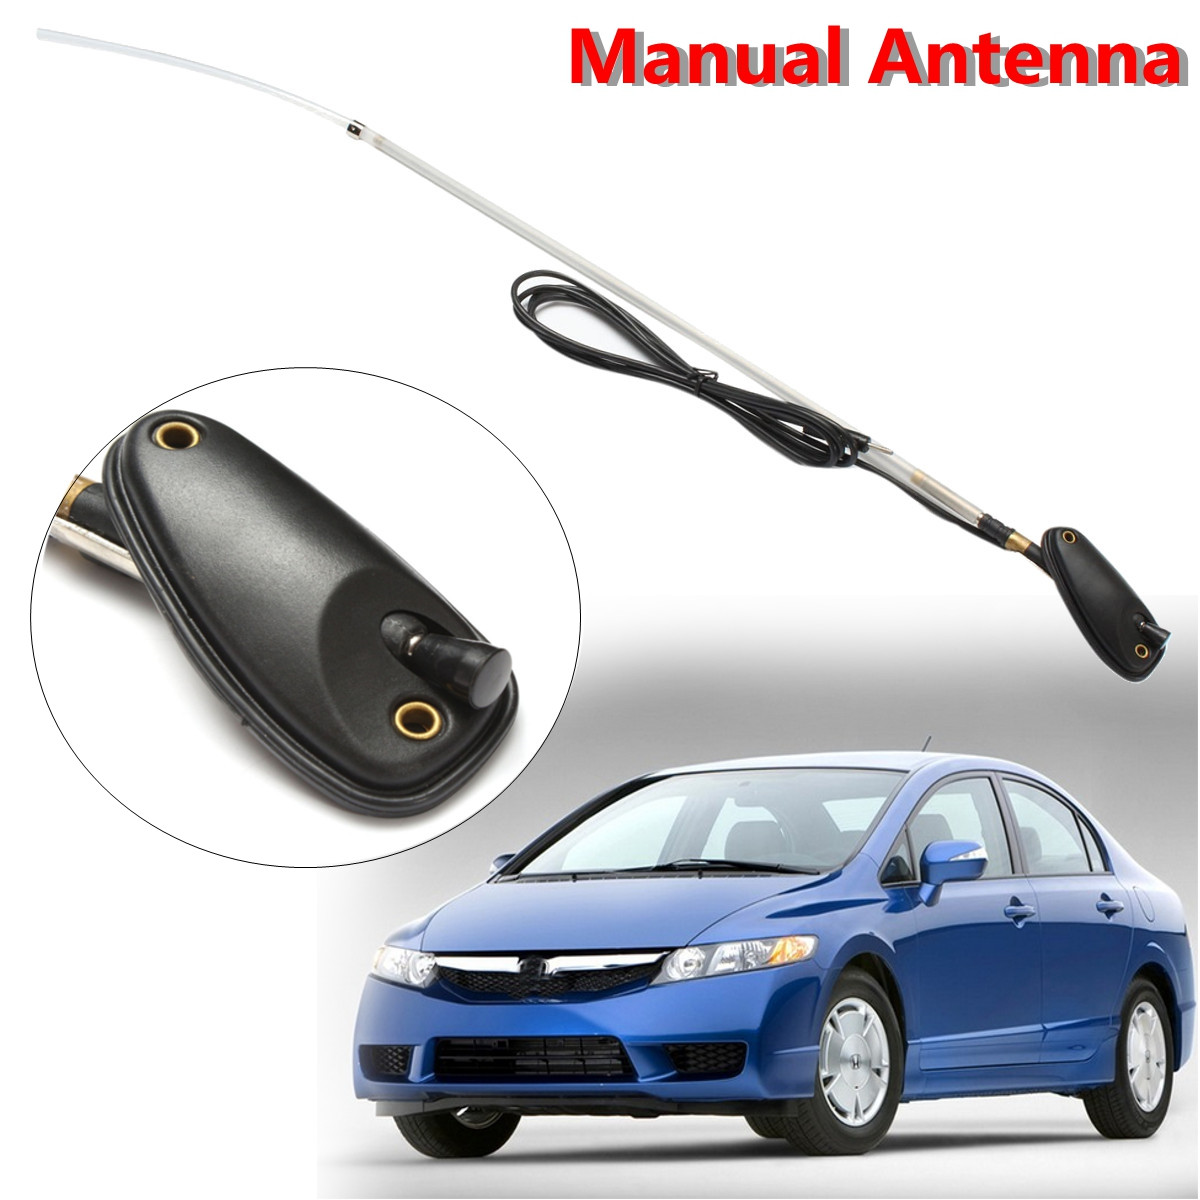 Car AM/FM Manual Aerial Aerials Antenna 39150-S01-A02 For Honda For CIVIC 1992 1993 1994 1995 1996 1997 1998 1999 2000 2001 <font><b>2002</b></font> image